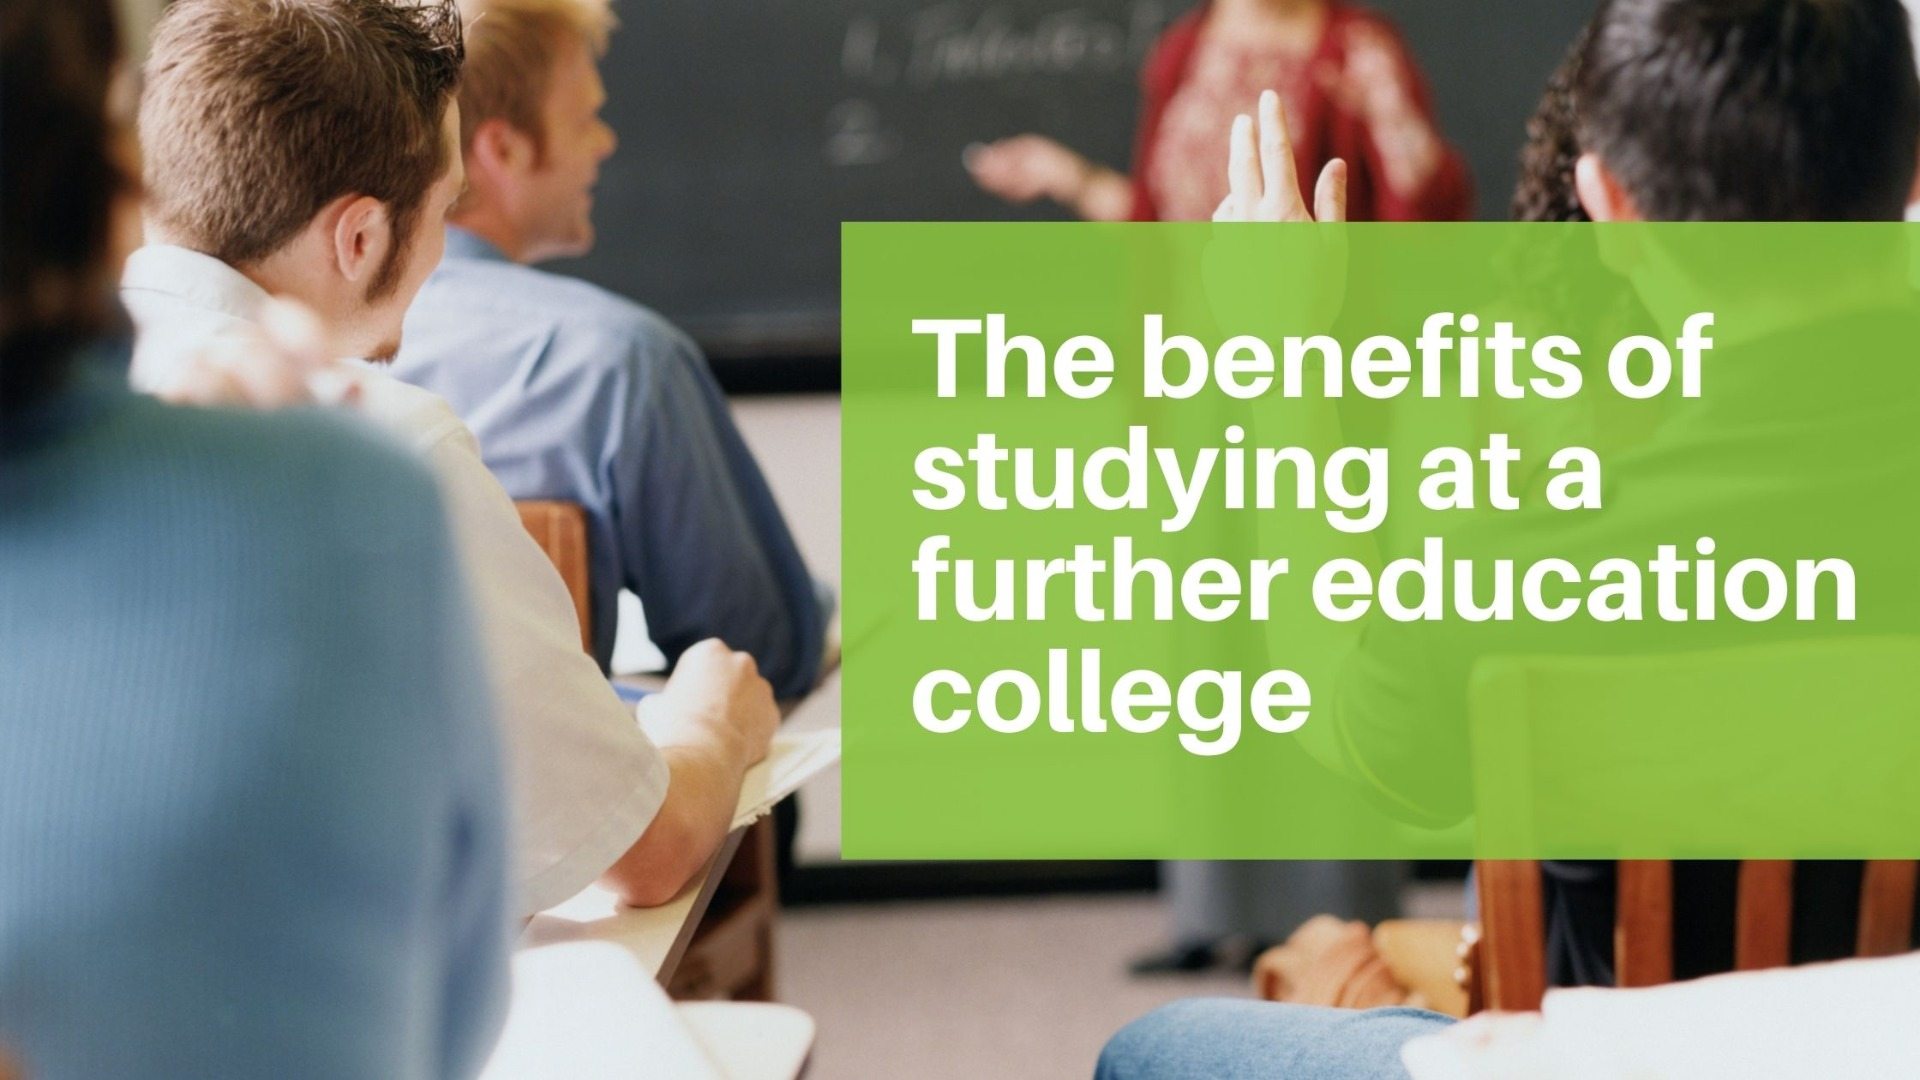 The Benefits of Studying at a Further Education College